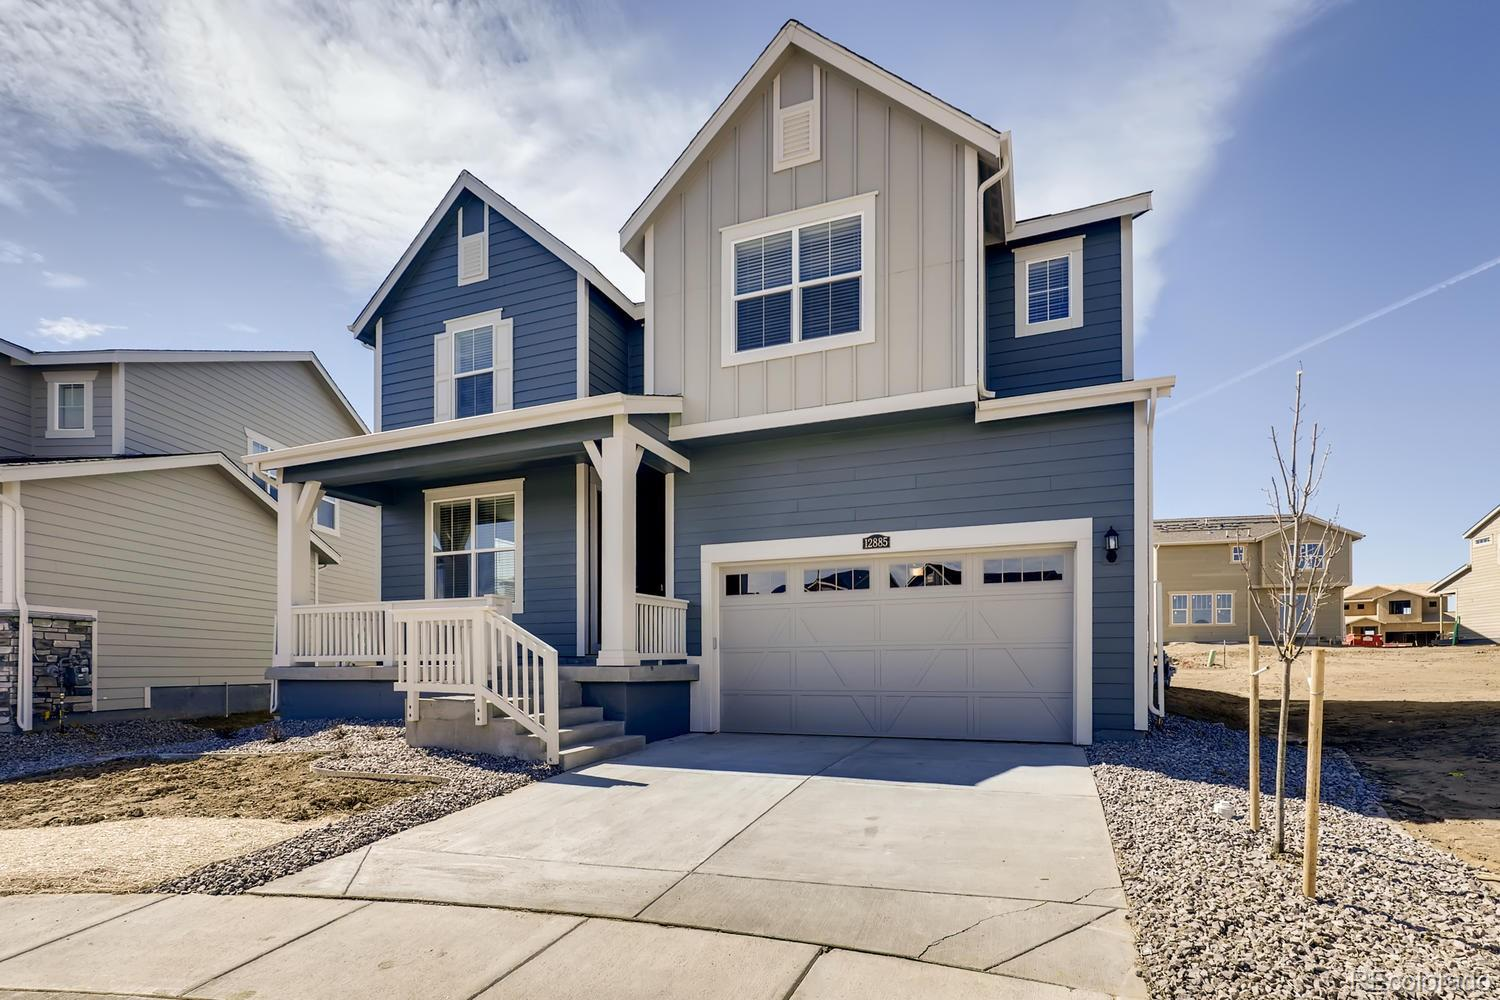 Available March 2020! Located on a quiet cul-de-sac, this stunning new Chelton 2-story features, 4 beds (3 main home and 1 next gen), 4 baths (3 main home & 1 next gen),  laundry (both main & nextgen), living room (nextgen), great room (main home), kitchen (both main home & nextgen), unfinished basement for your future expansion, 3 car garage, covered rear deck and more. Lennar provides the latest in energy efficiency and state of the art technology with several fabulous floorplans to choose from. Energy efficiency, and technology/connectivity (Wifi Certified, Alexa & Ring Door Bell) seamlessly blended with luxury to make your new house a home. Barefoot Lakes offers single family homes for every lifestyle. Close to dining, shopping, entertainment and other amenities. This community features extensive trails, wide open spaces, and twin sapphire lakes all set against backgrounds of deep blue skies and Colorado's breathtaking sunsets!